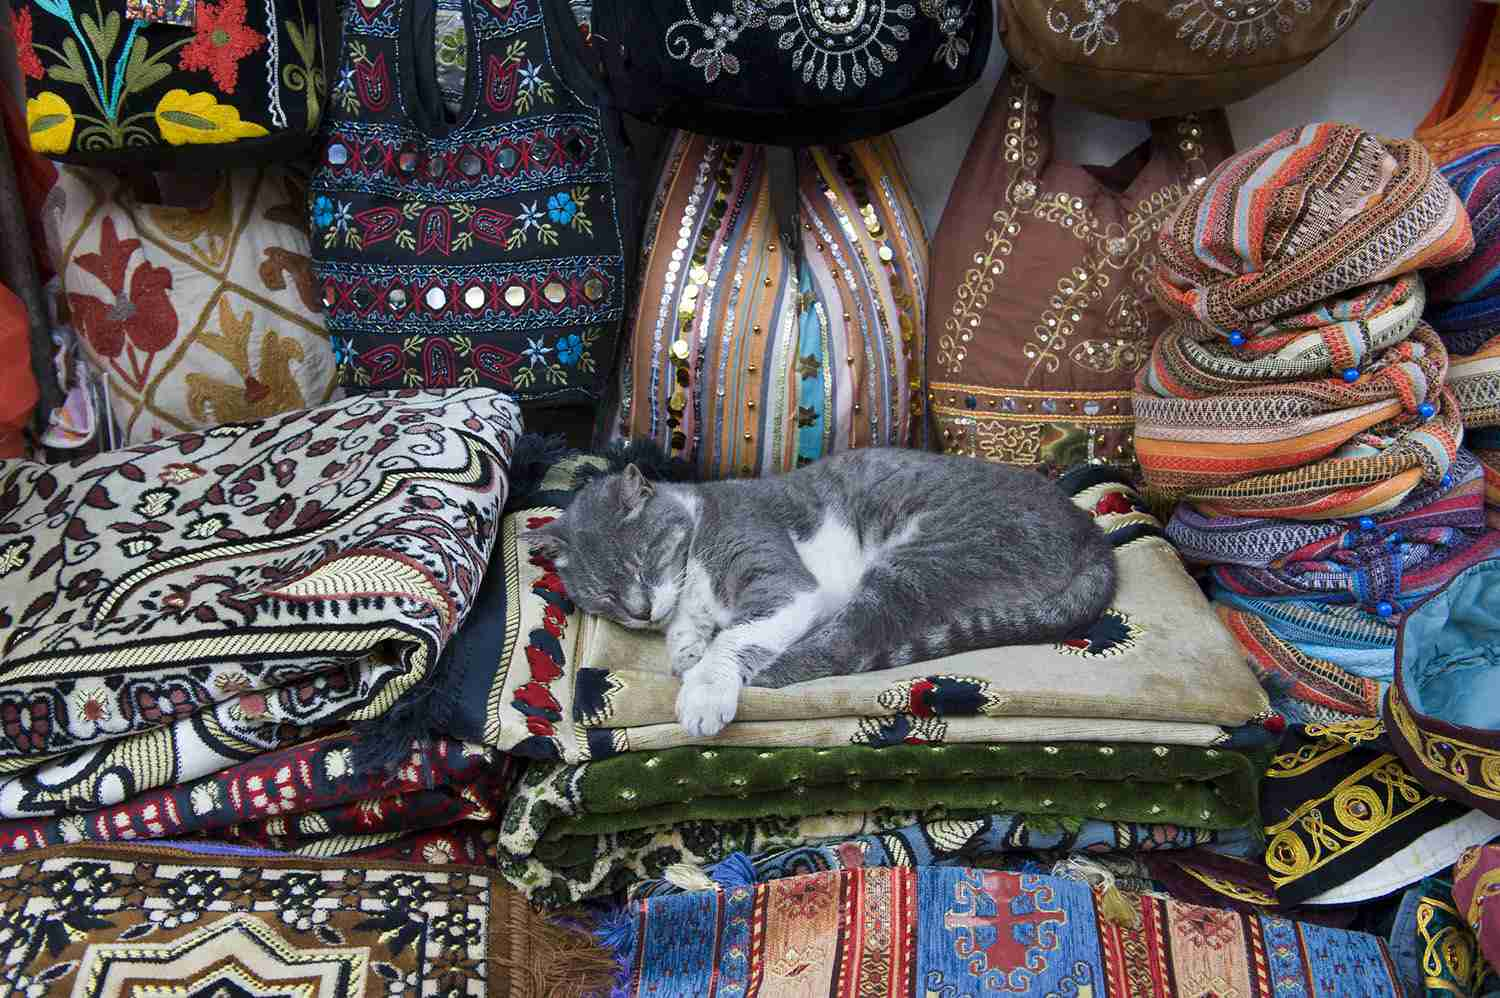 A Cat Sleeps Surrounded by Fabrics in the Grand Bazar, Istanbul,Turkey